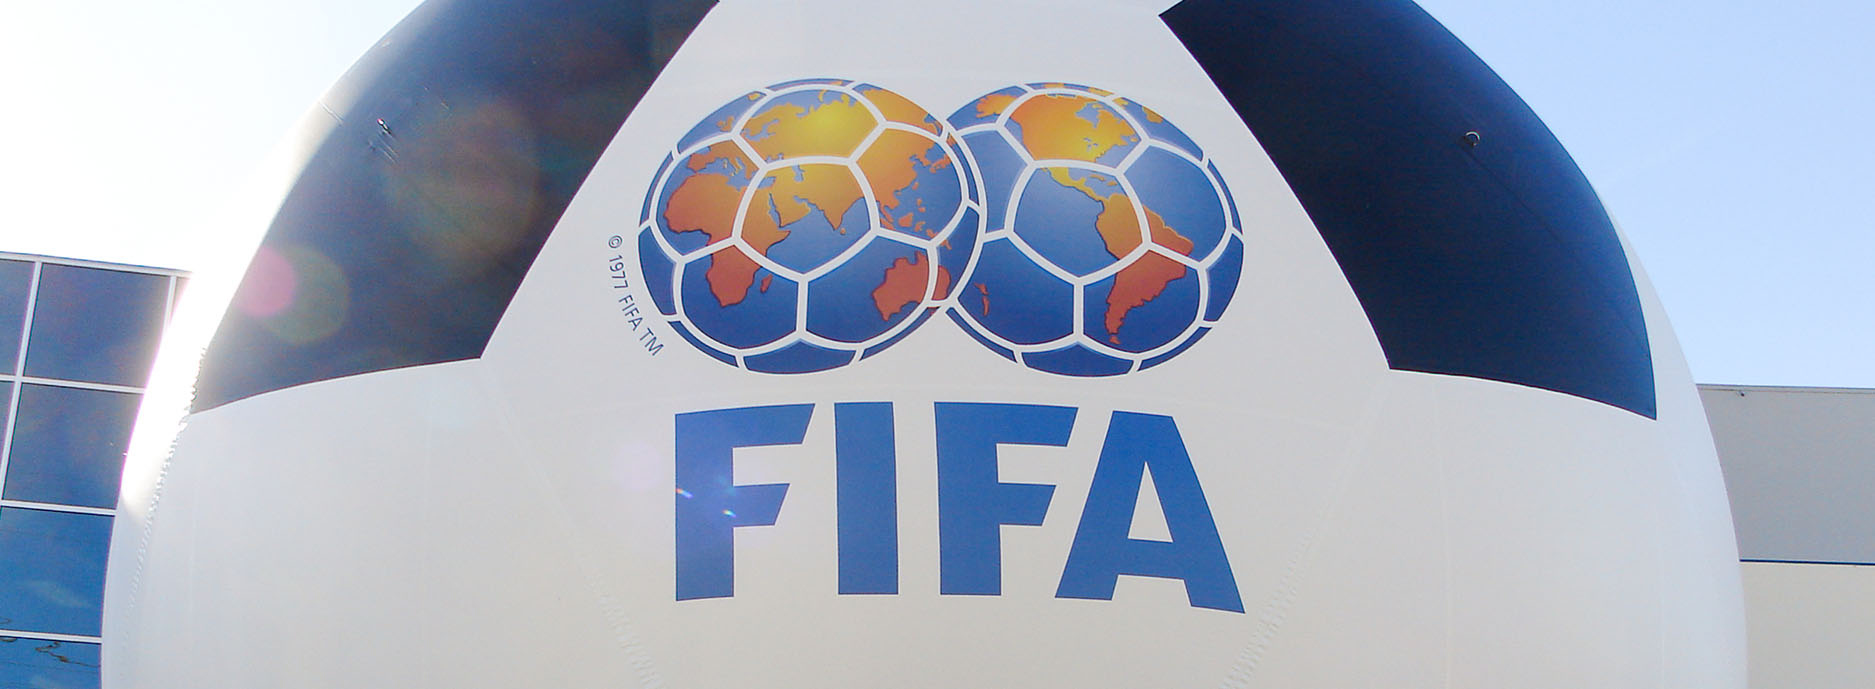 fifa-soccer-ball-header.jpg